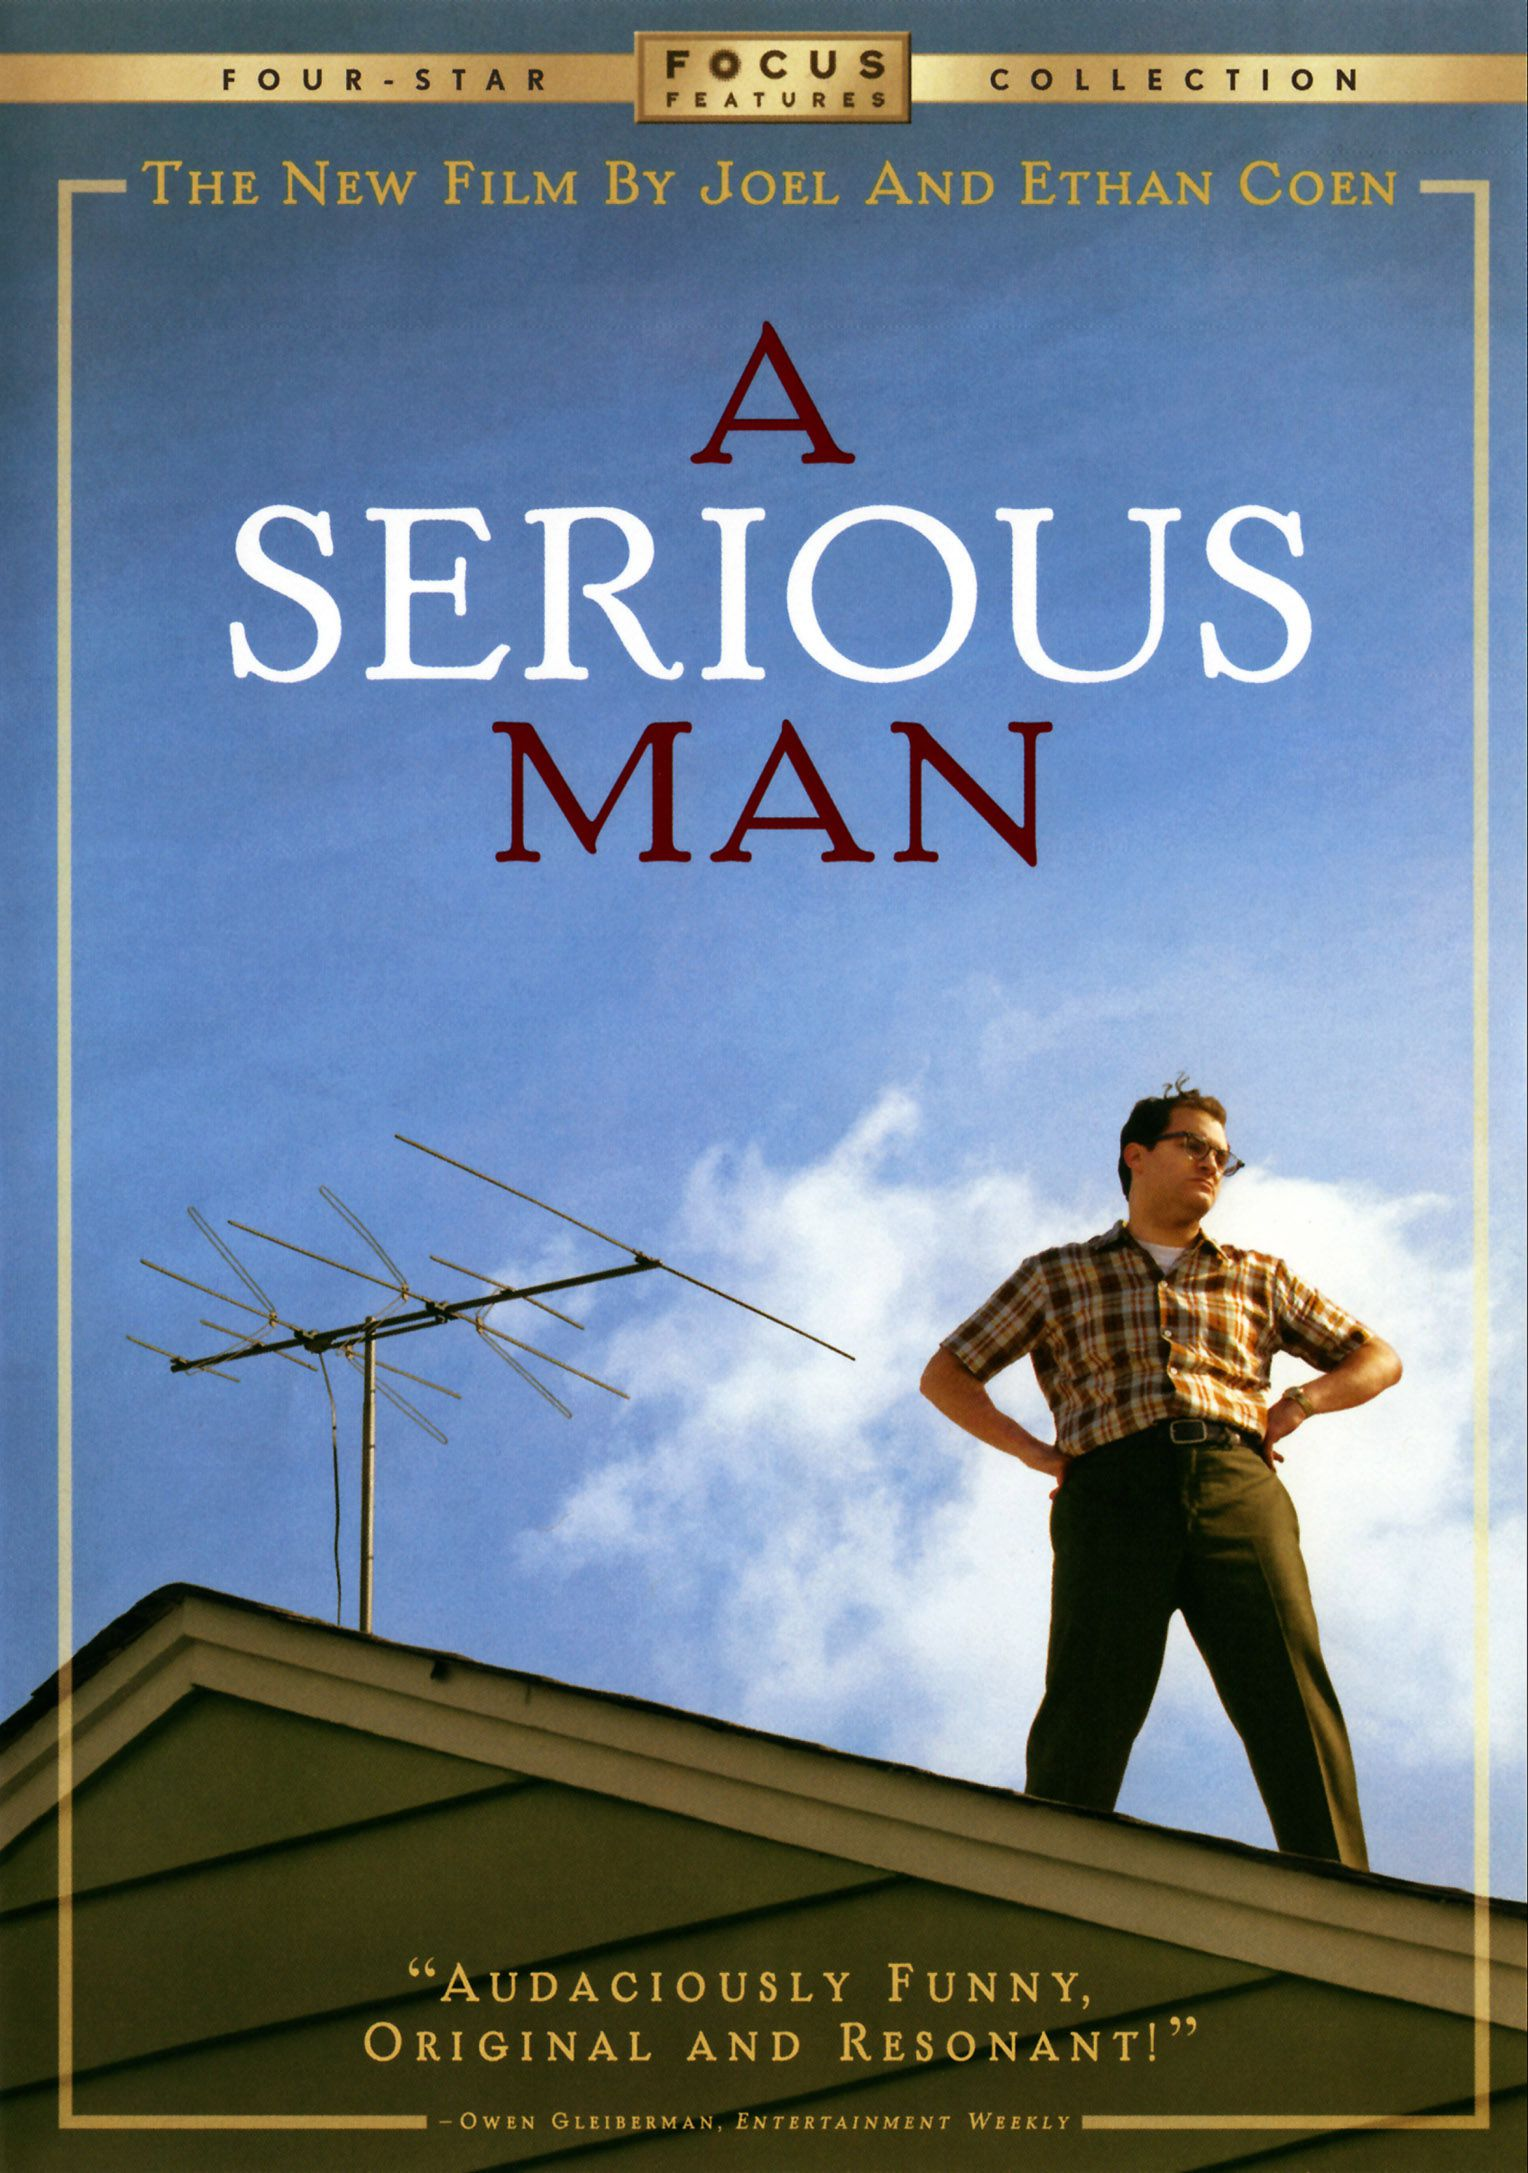 Publicity still for A Serious Man